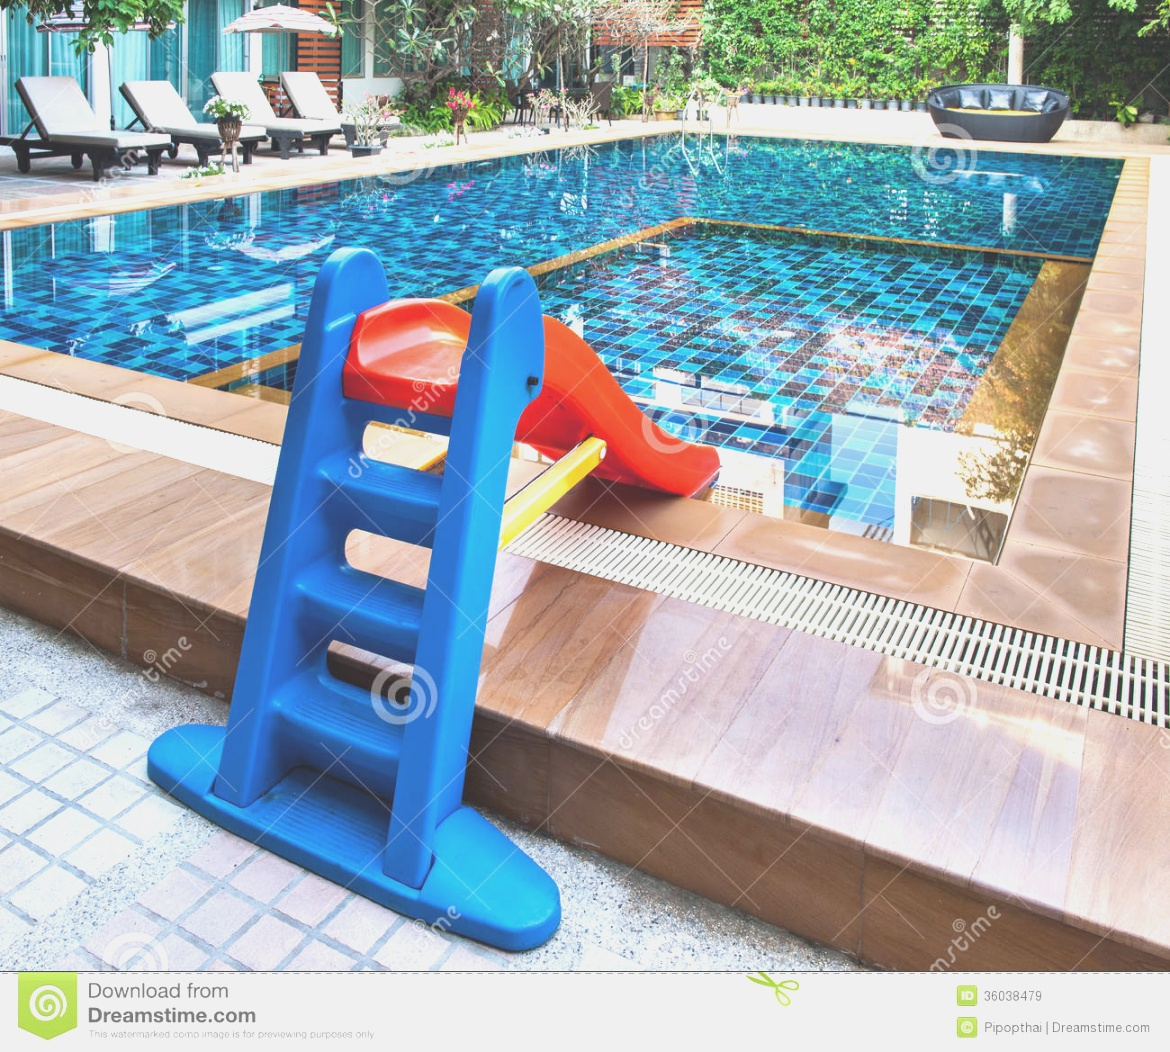 7 reasons why people like used swimming pool roy home design for Domestic swimming pool design